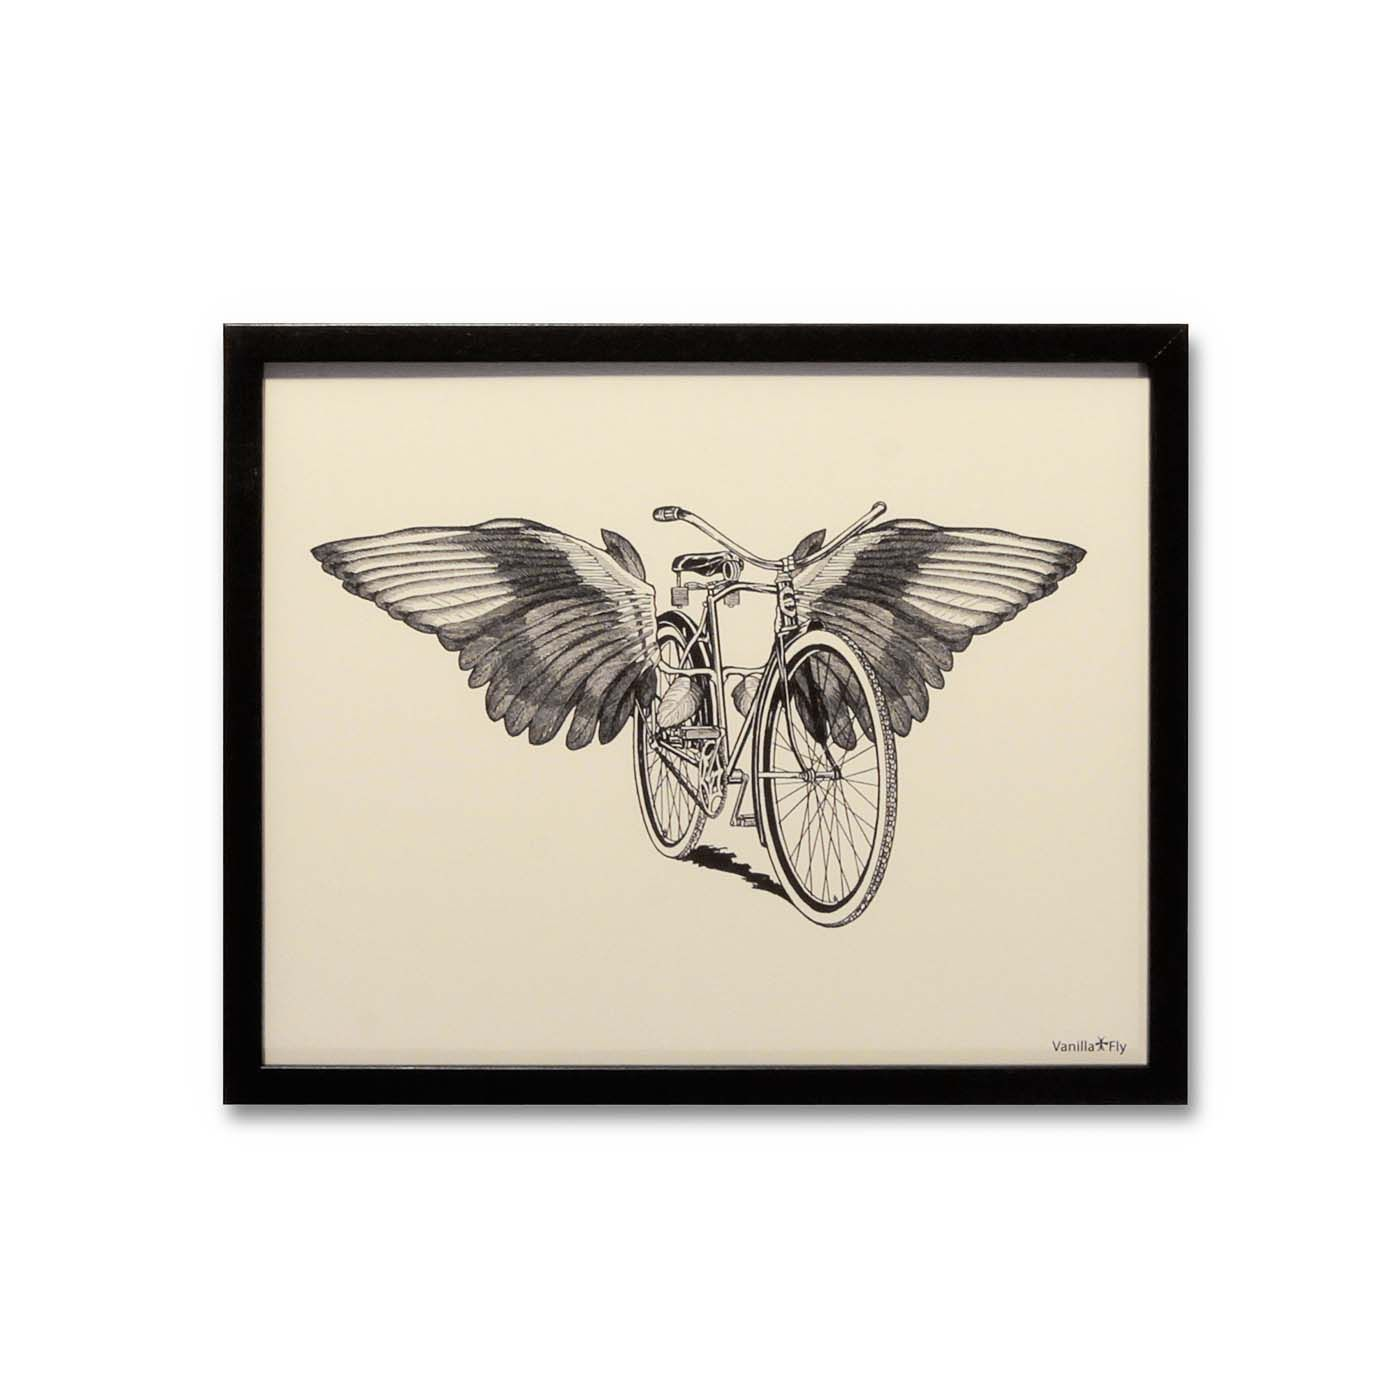 Affiche - Bicycle with wings